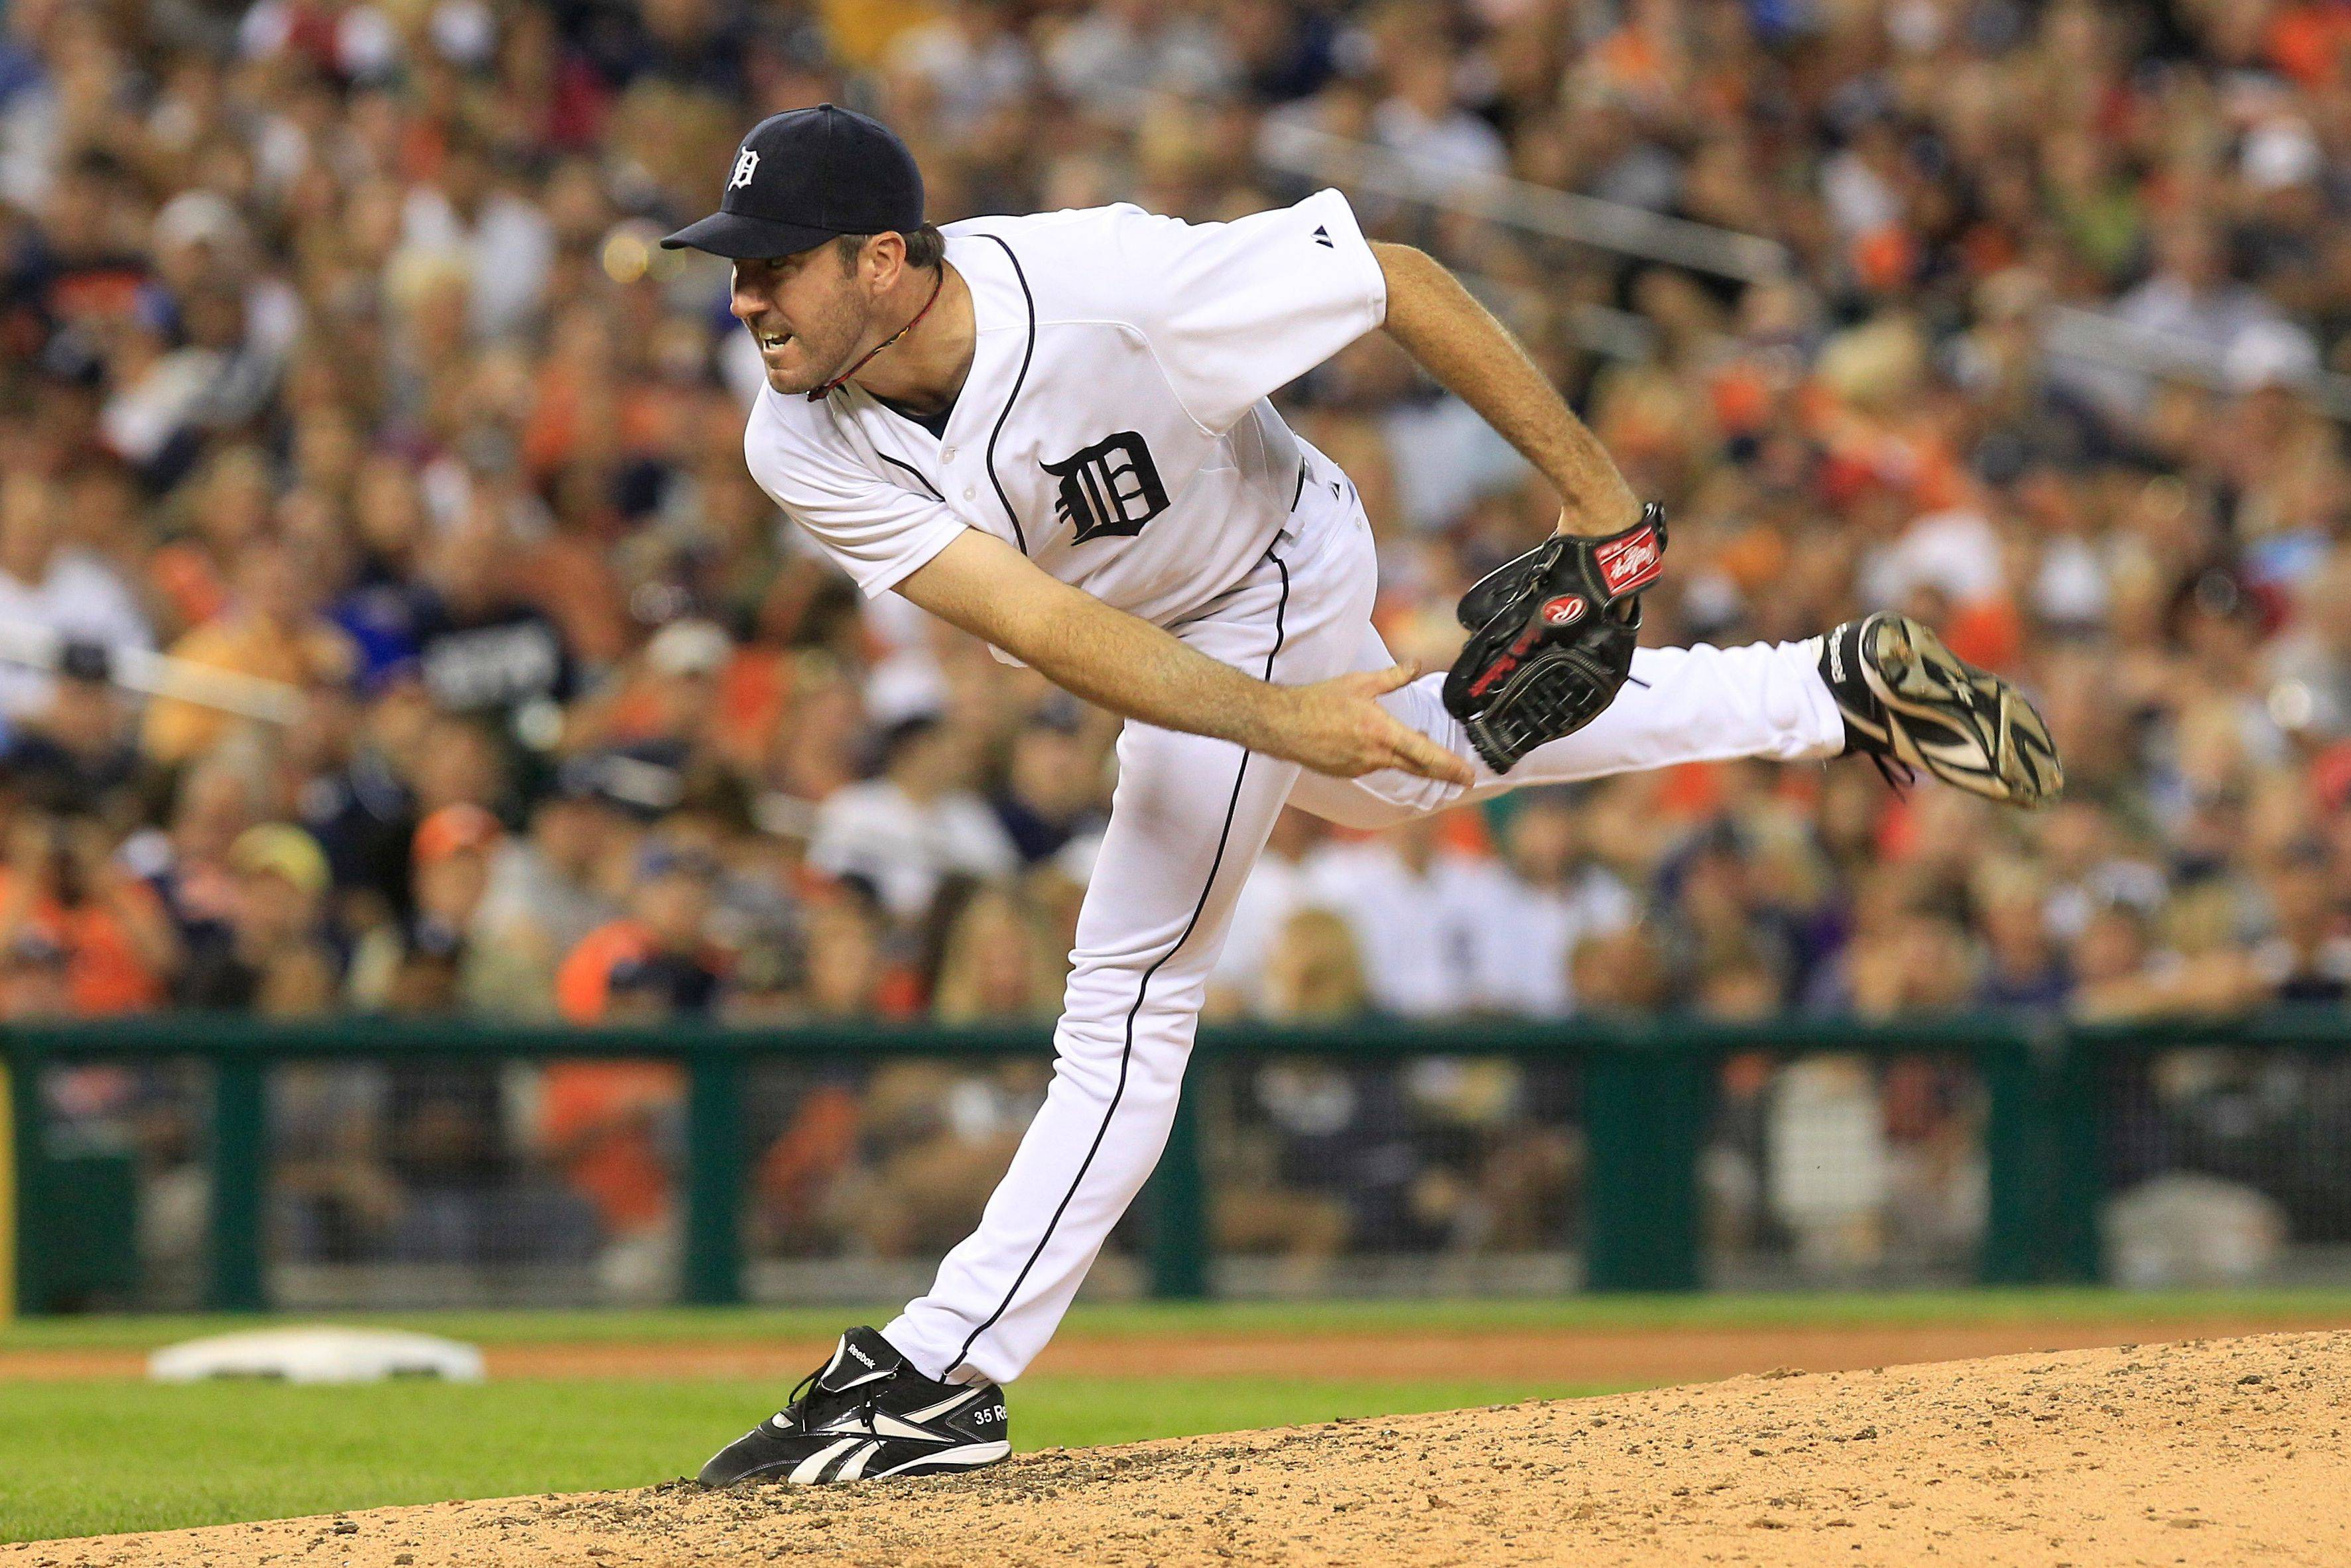 Tigers ace Justin Verlander paces himself so that he's at his very best in the later innings.